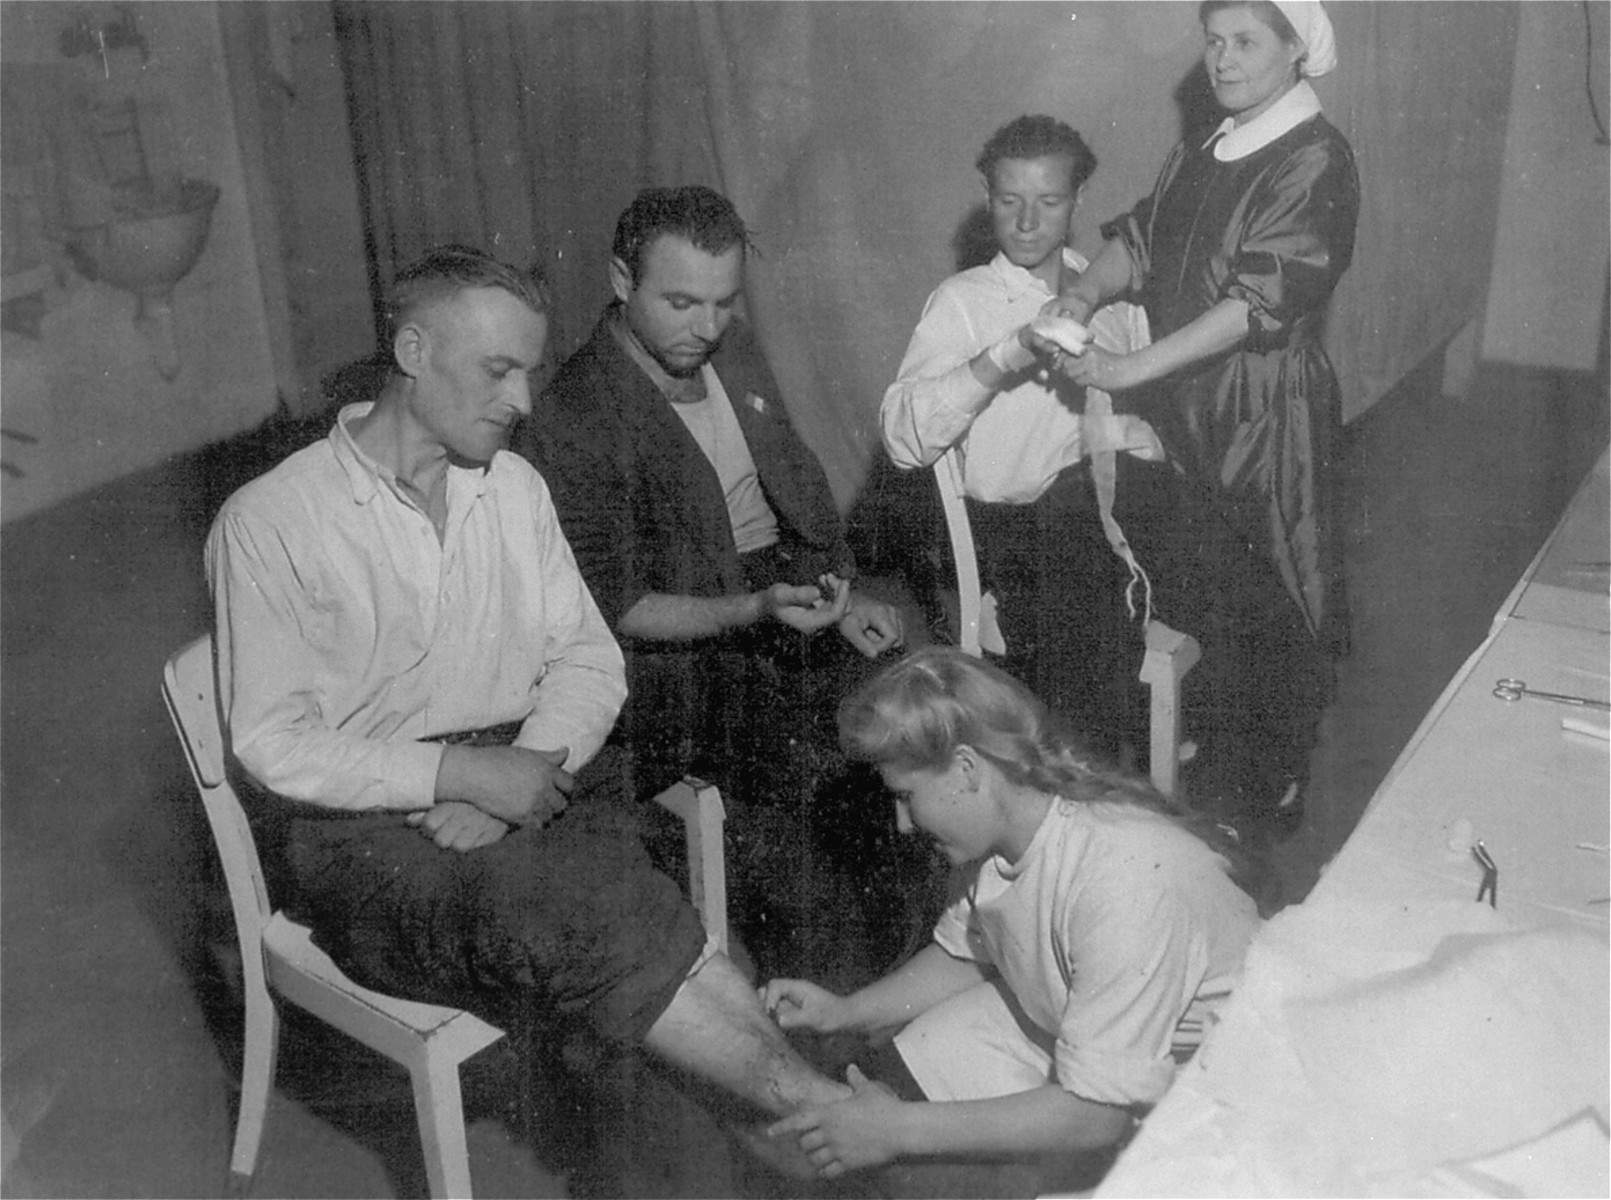 Displaced persons awaiting repatriation are cared for by Russian nurses at the infirmary of a DP camp in Goeppingen.